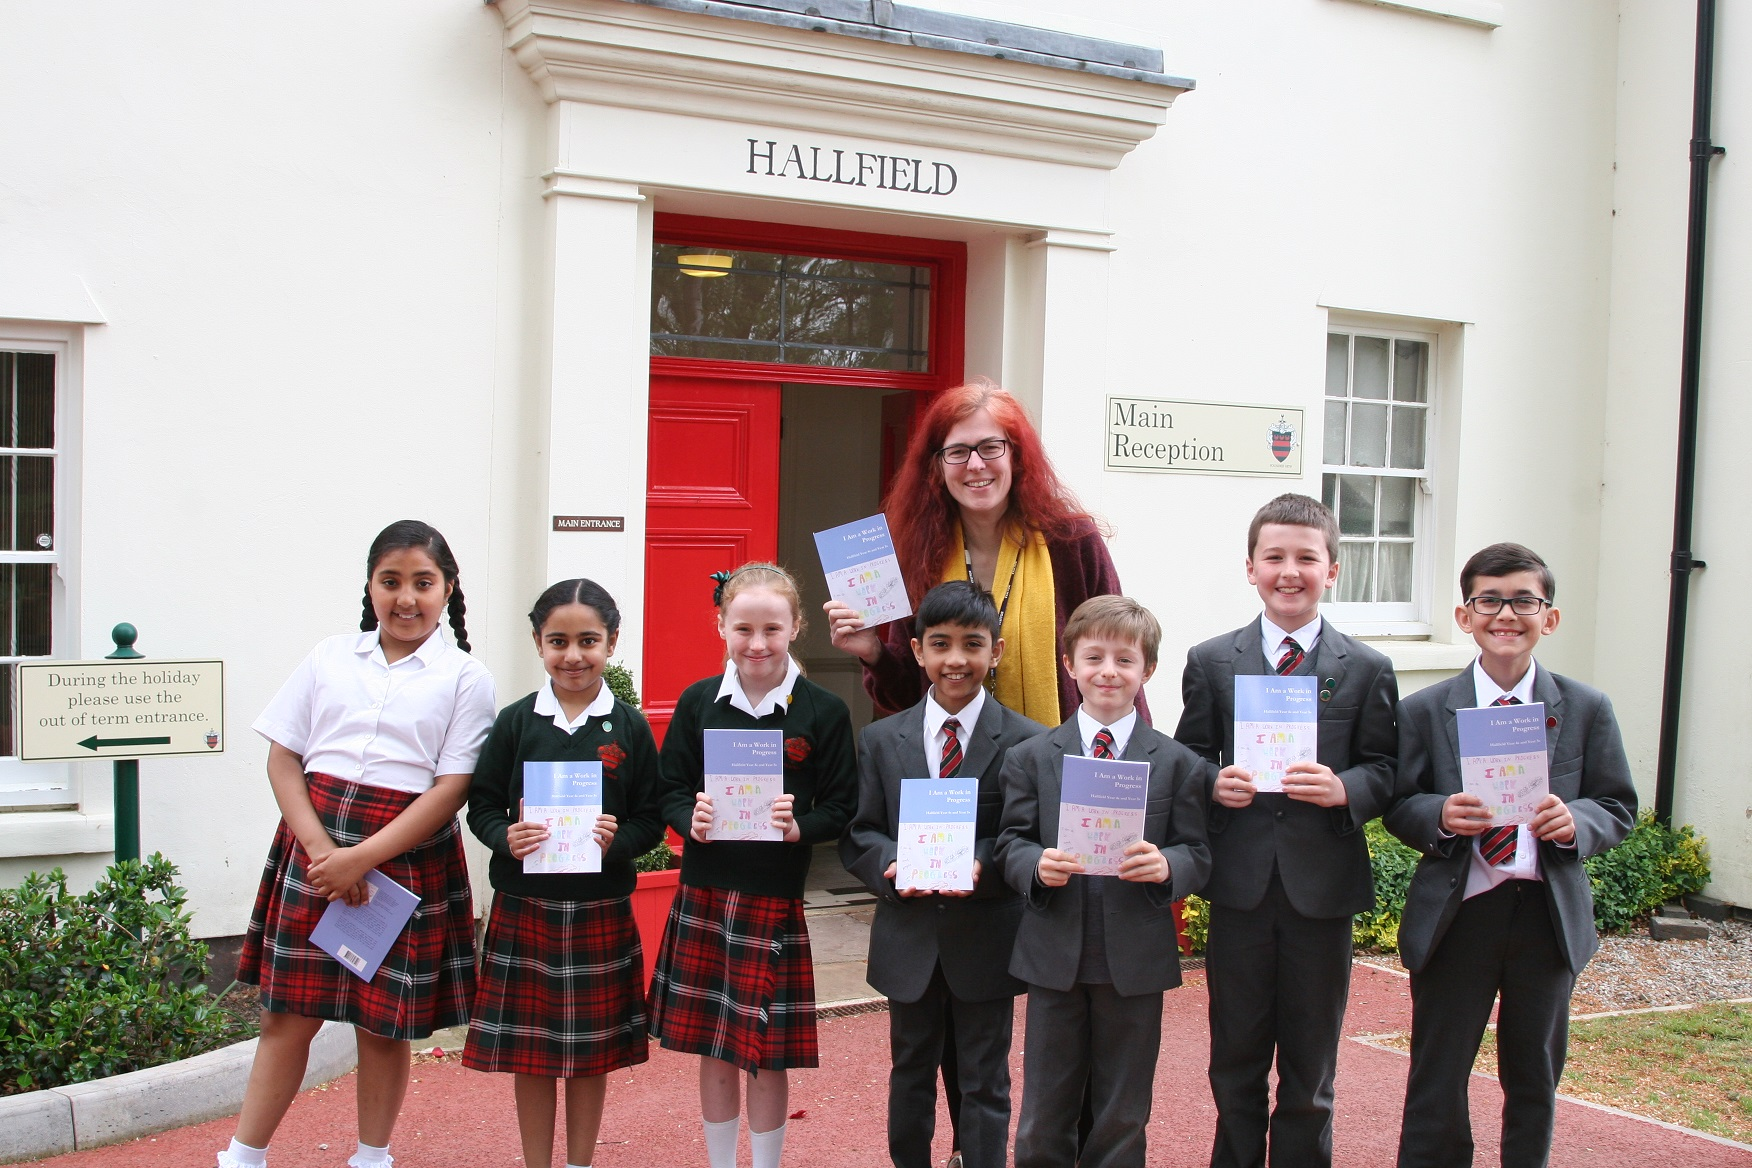 Birmingham children get published as part of school's focus on wellbeing